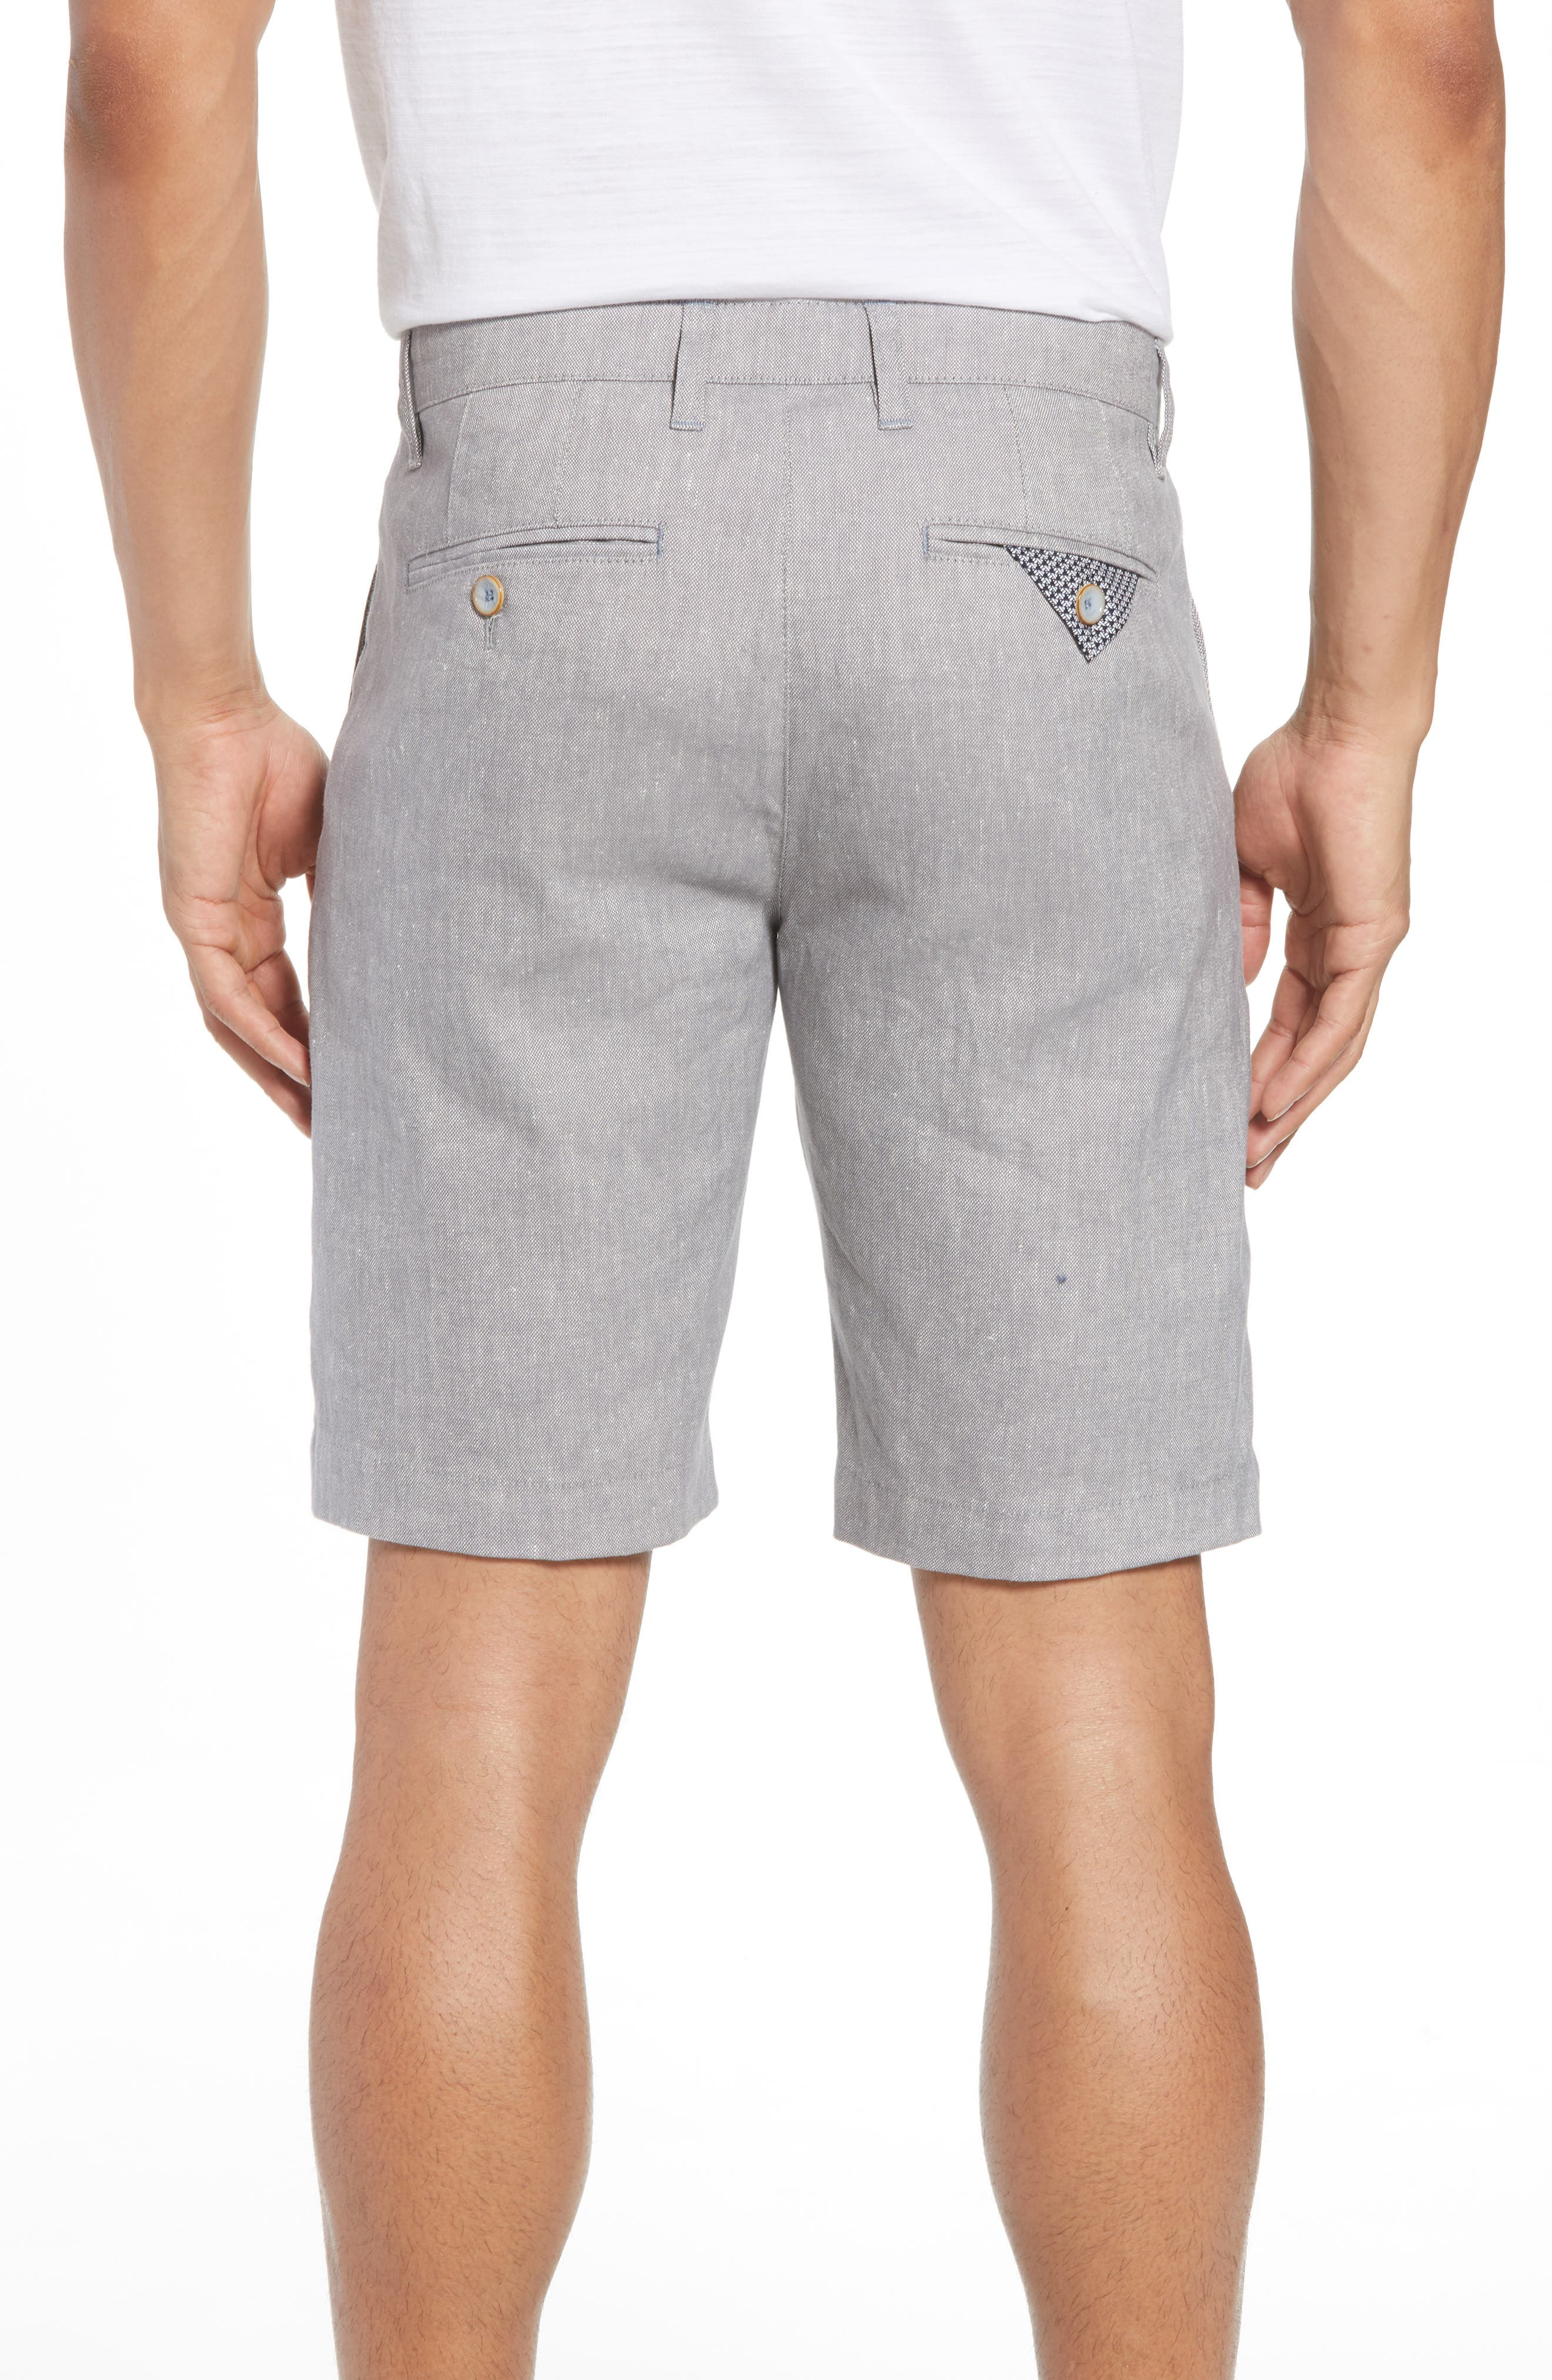 Newshow Flat Front Stretch Cotton Blend Shorts,                             Alternate thumbnail 2, color,                             050